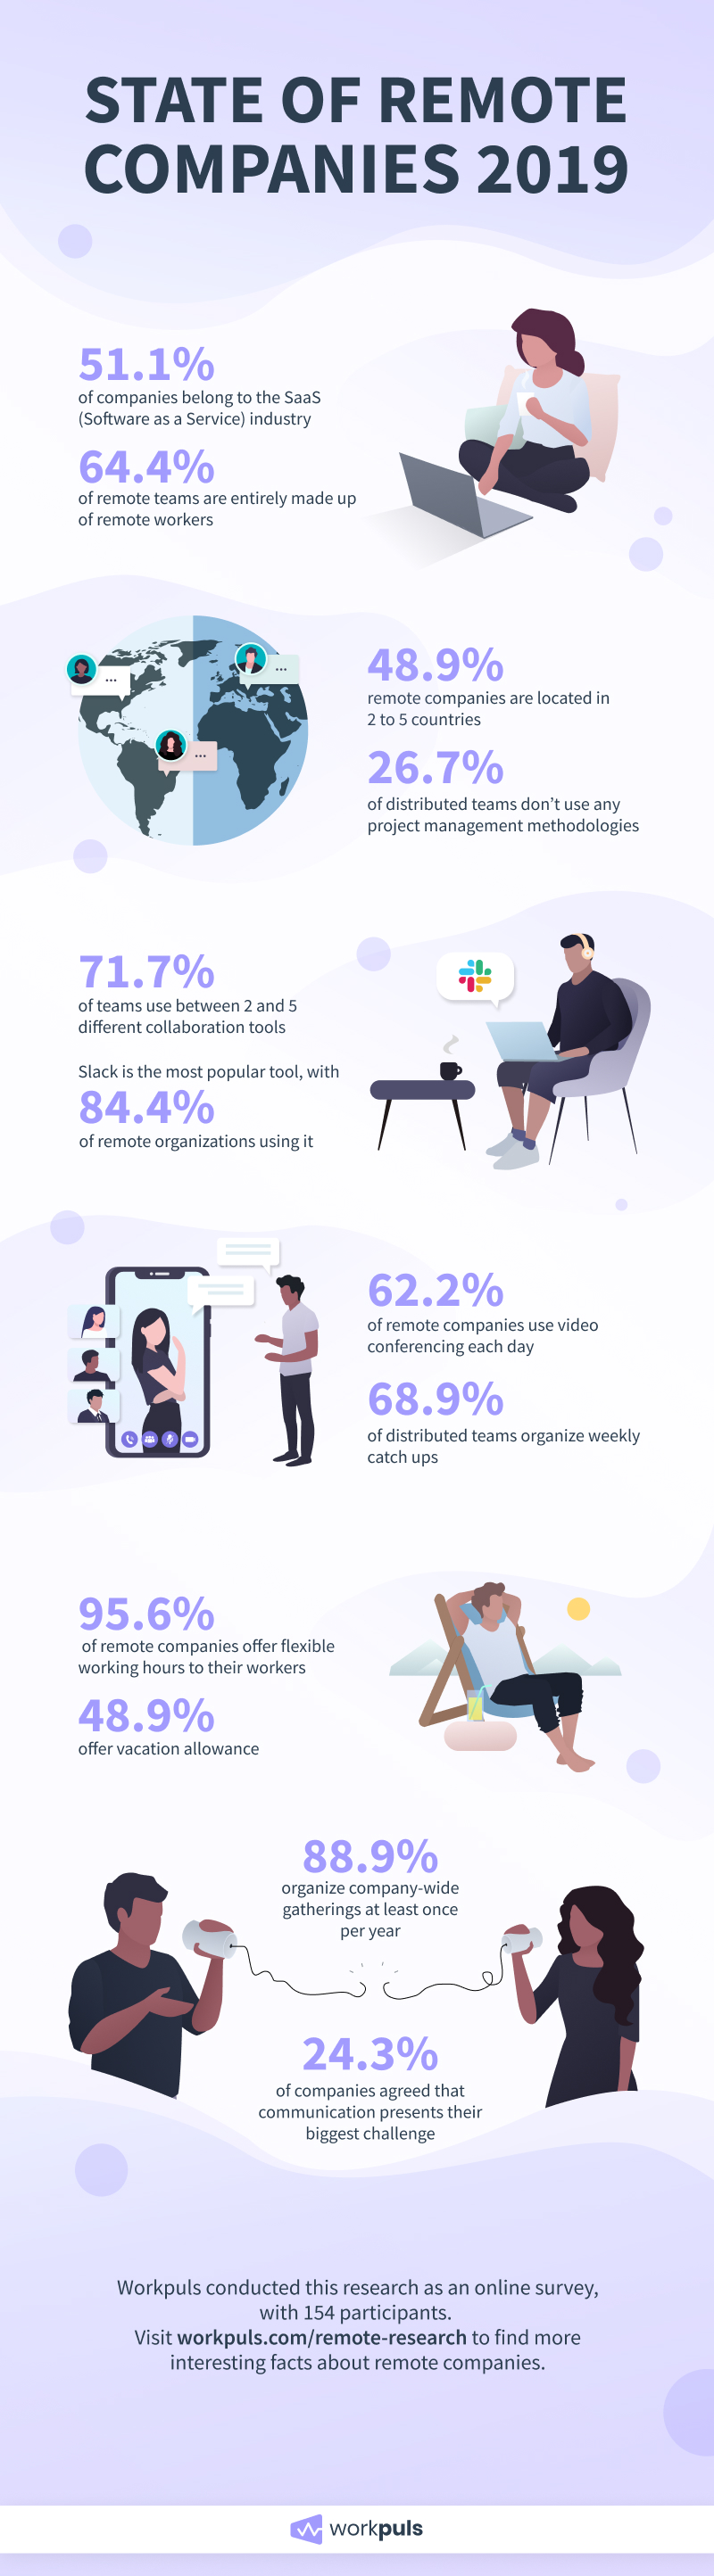 State of Remote Companies 2019